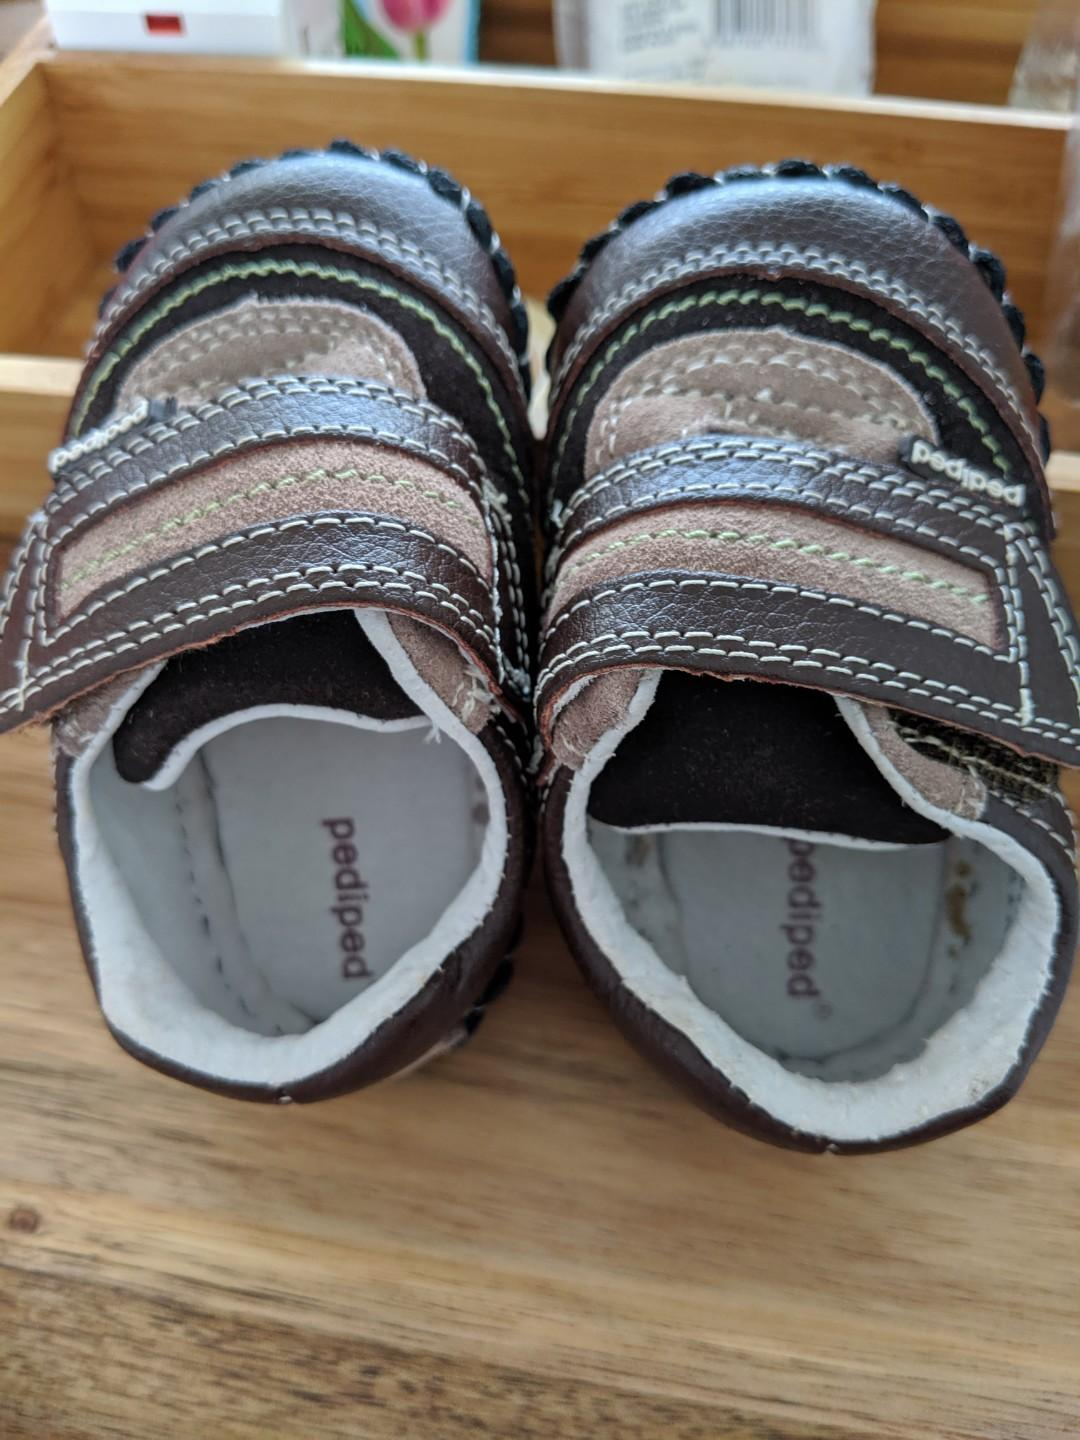 Pediped baby boy shoes for 6-12mth old